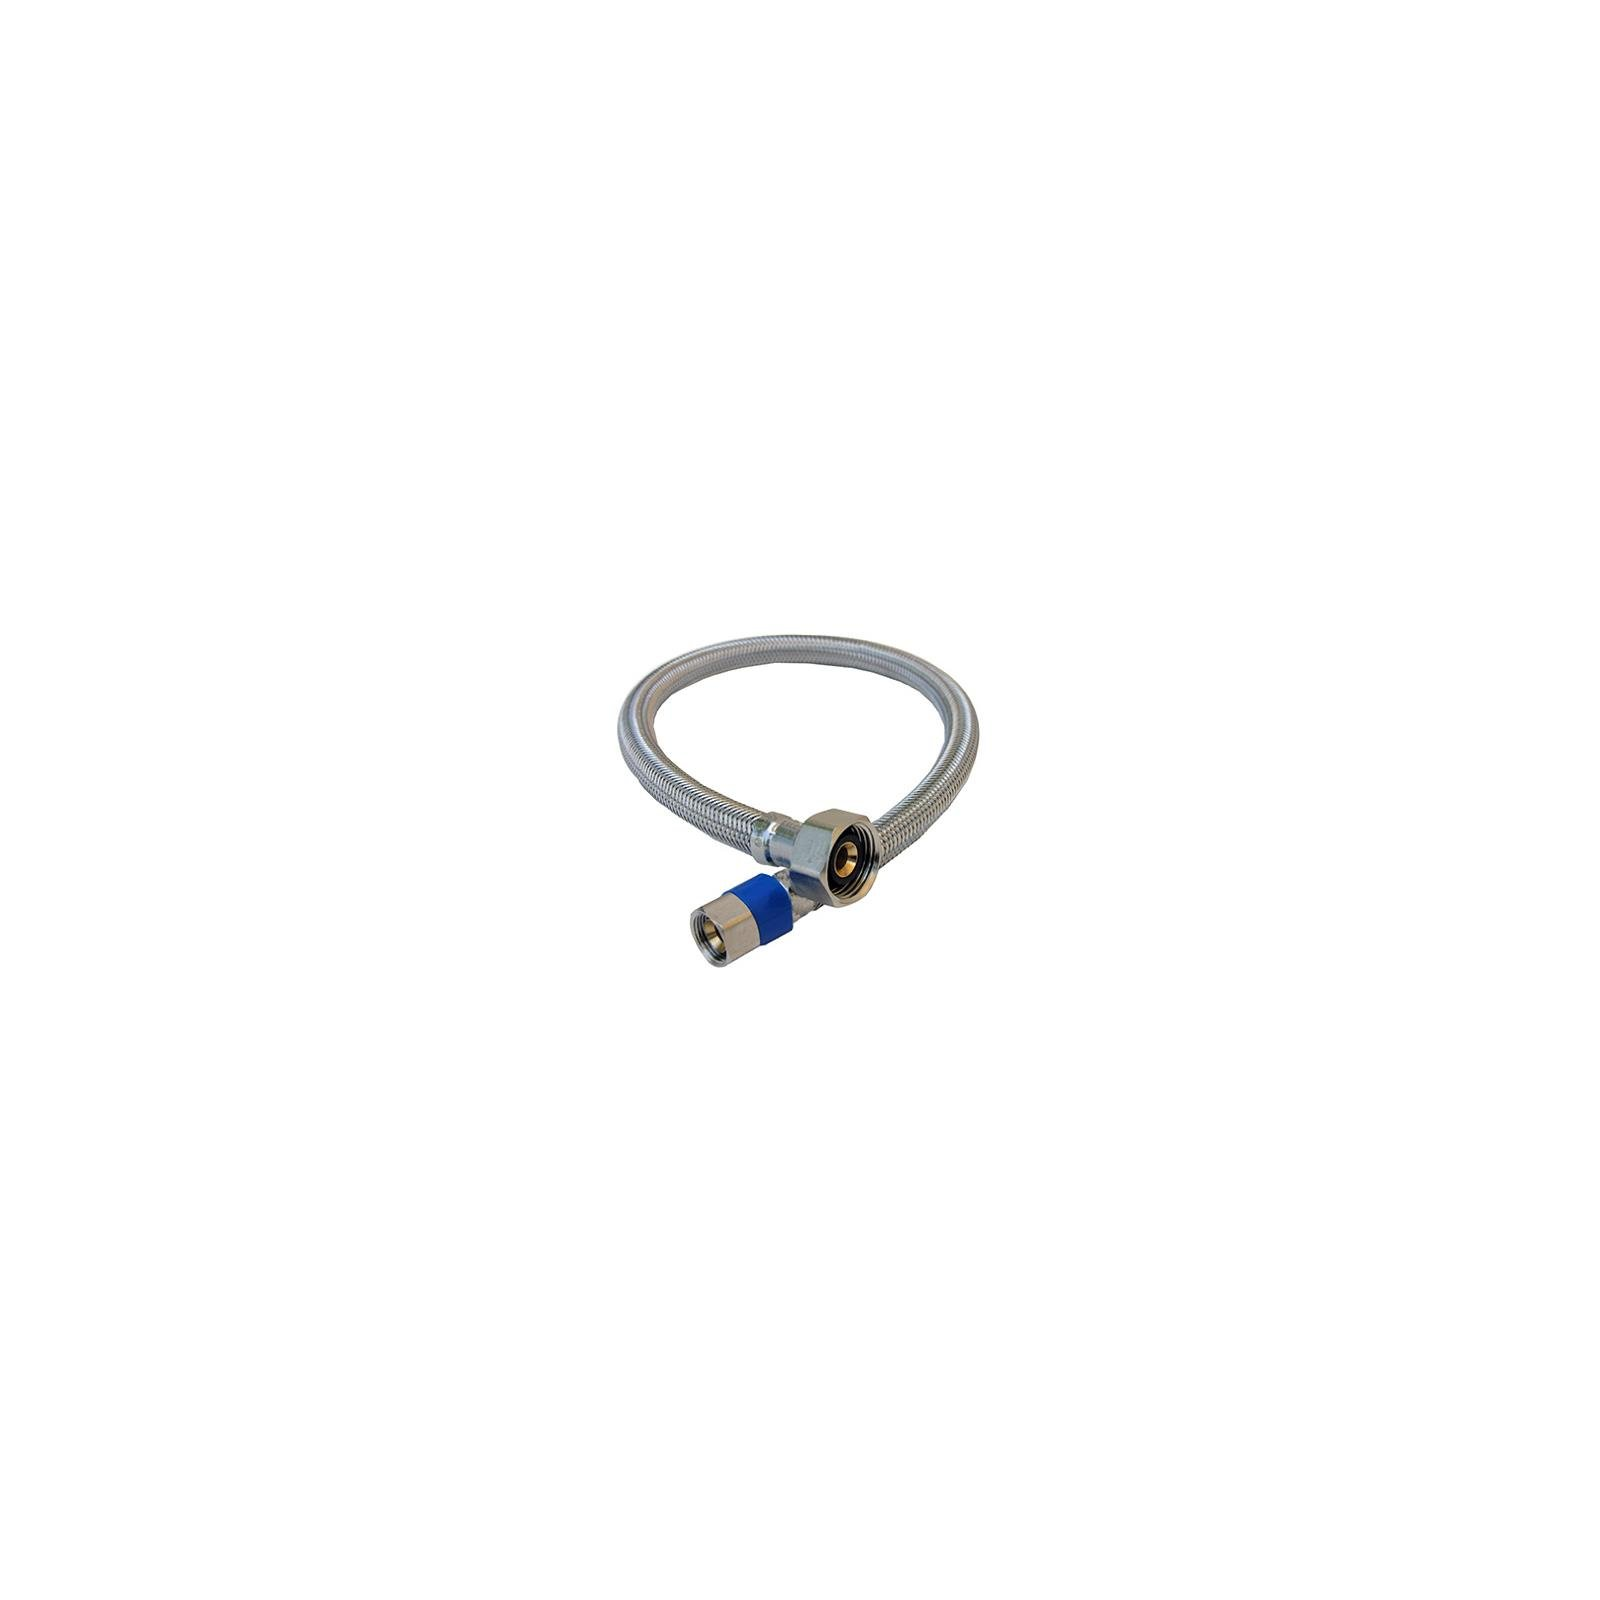 Larsen Supply 10-0113 Faucet Connector, Stainless Steel, 3/8-In. Compression x 1/2-In. Female Iron Pipe x - Quantity 10